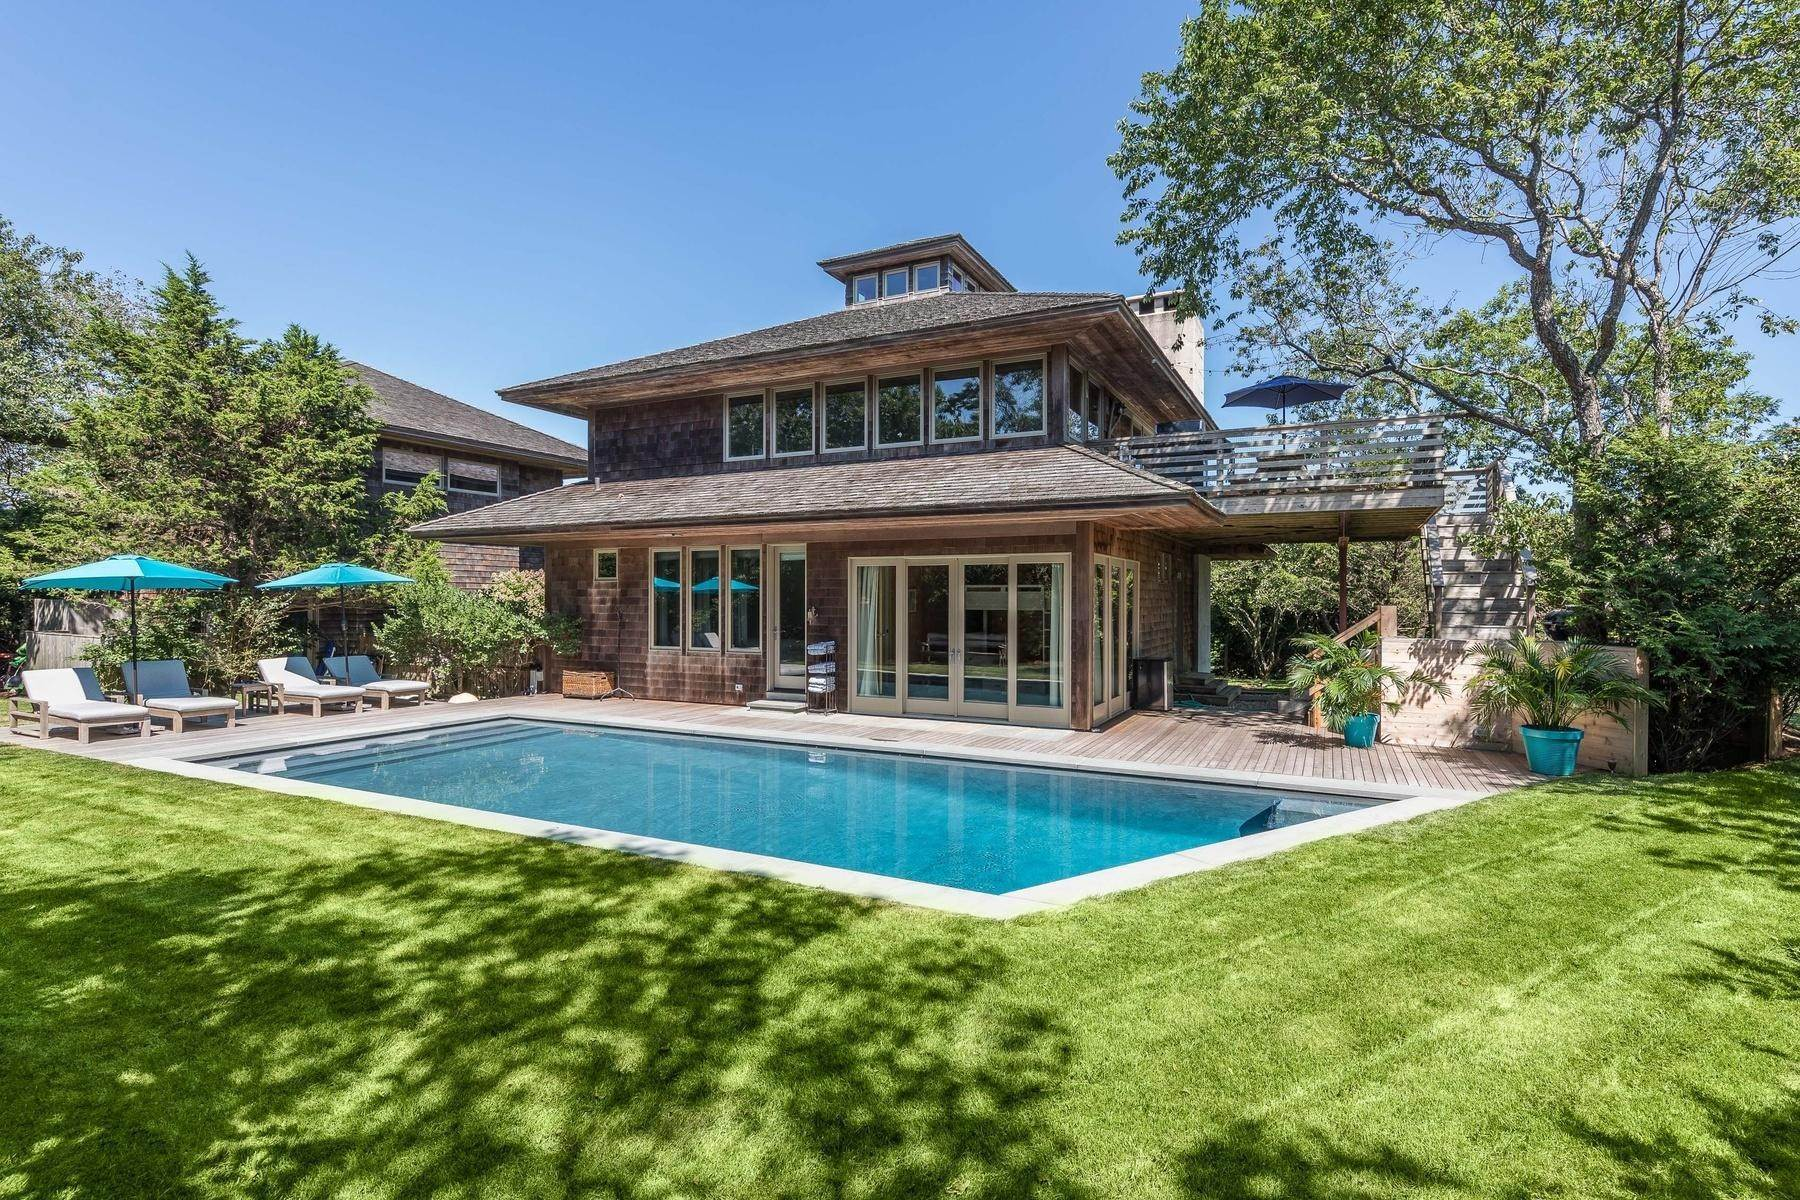 Single Family Home at Montauk's Surfside Area For The Summer With Pool Montauk, NY 11954